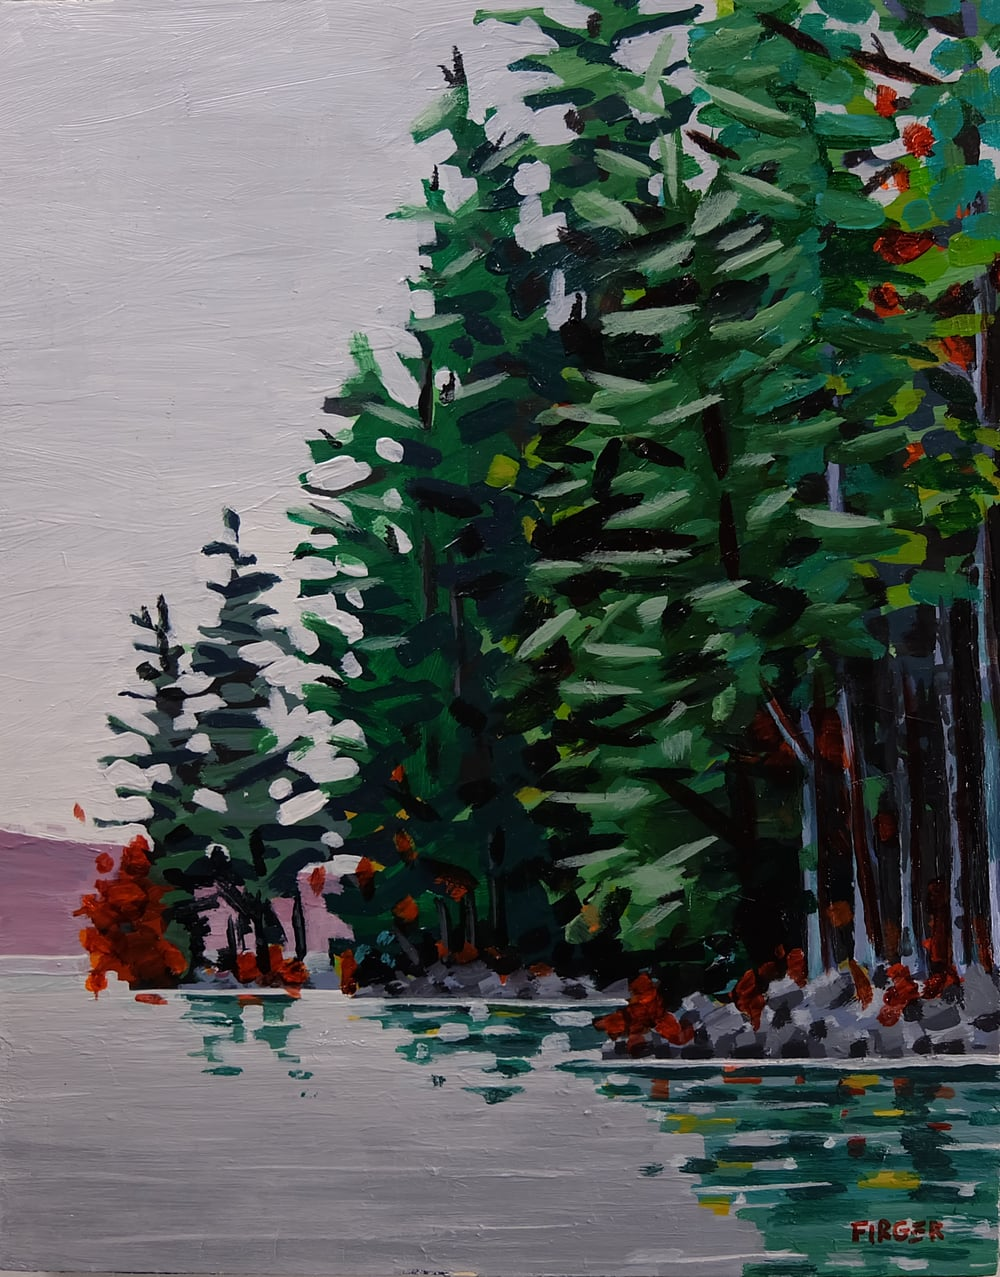 On Location - 8 x 10, Acrylic on Panel (SOLD)